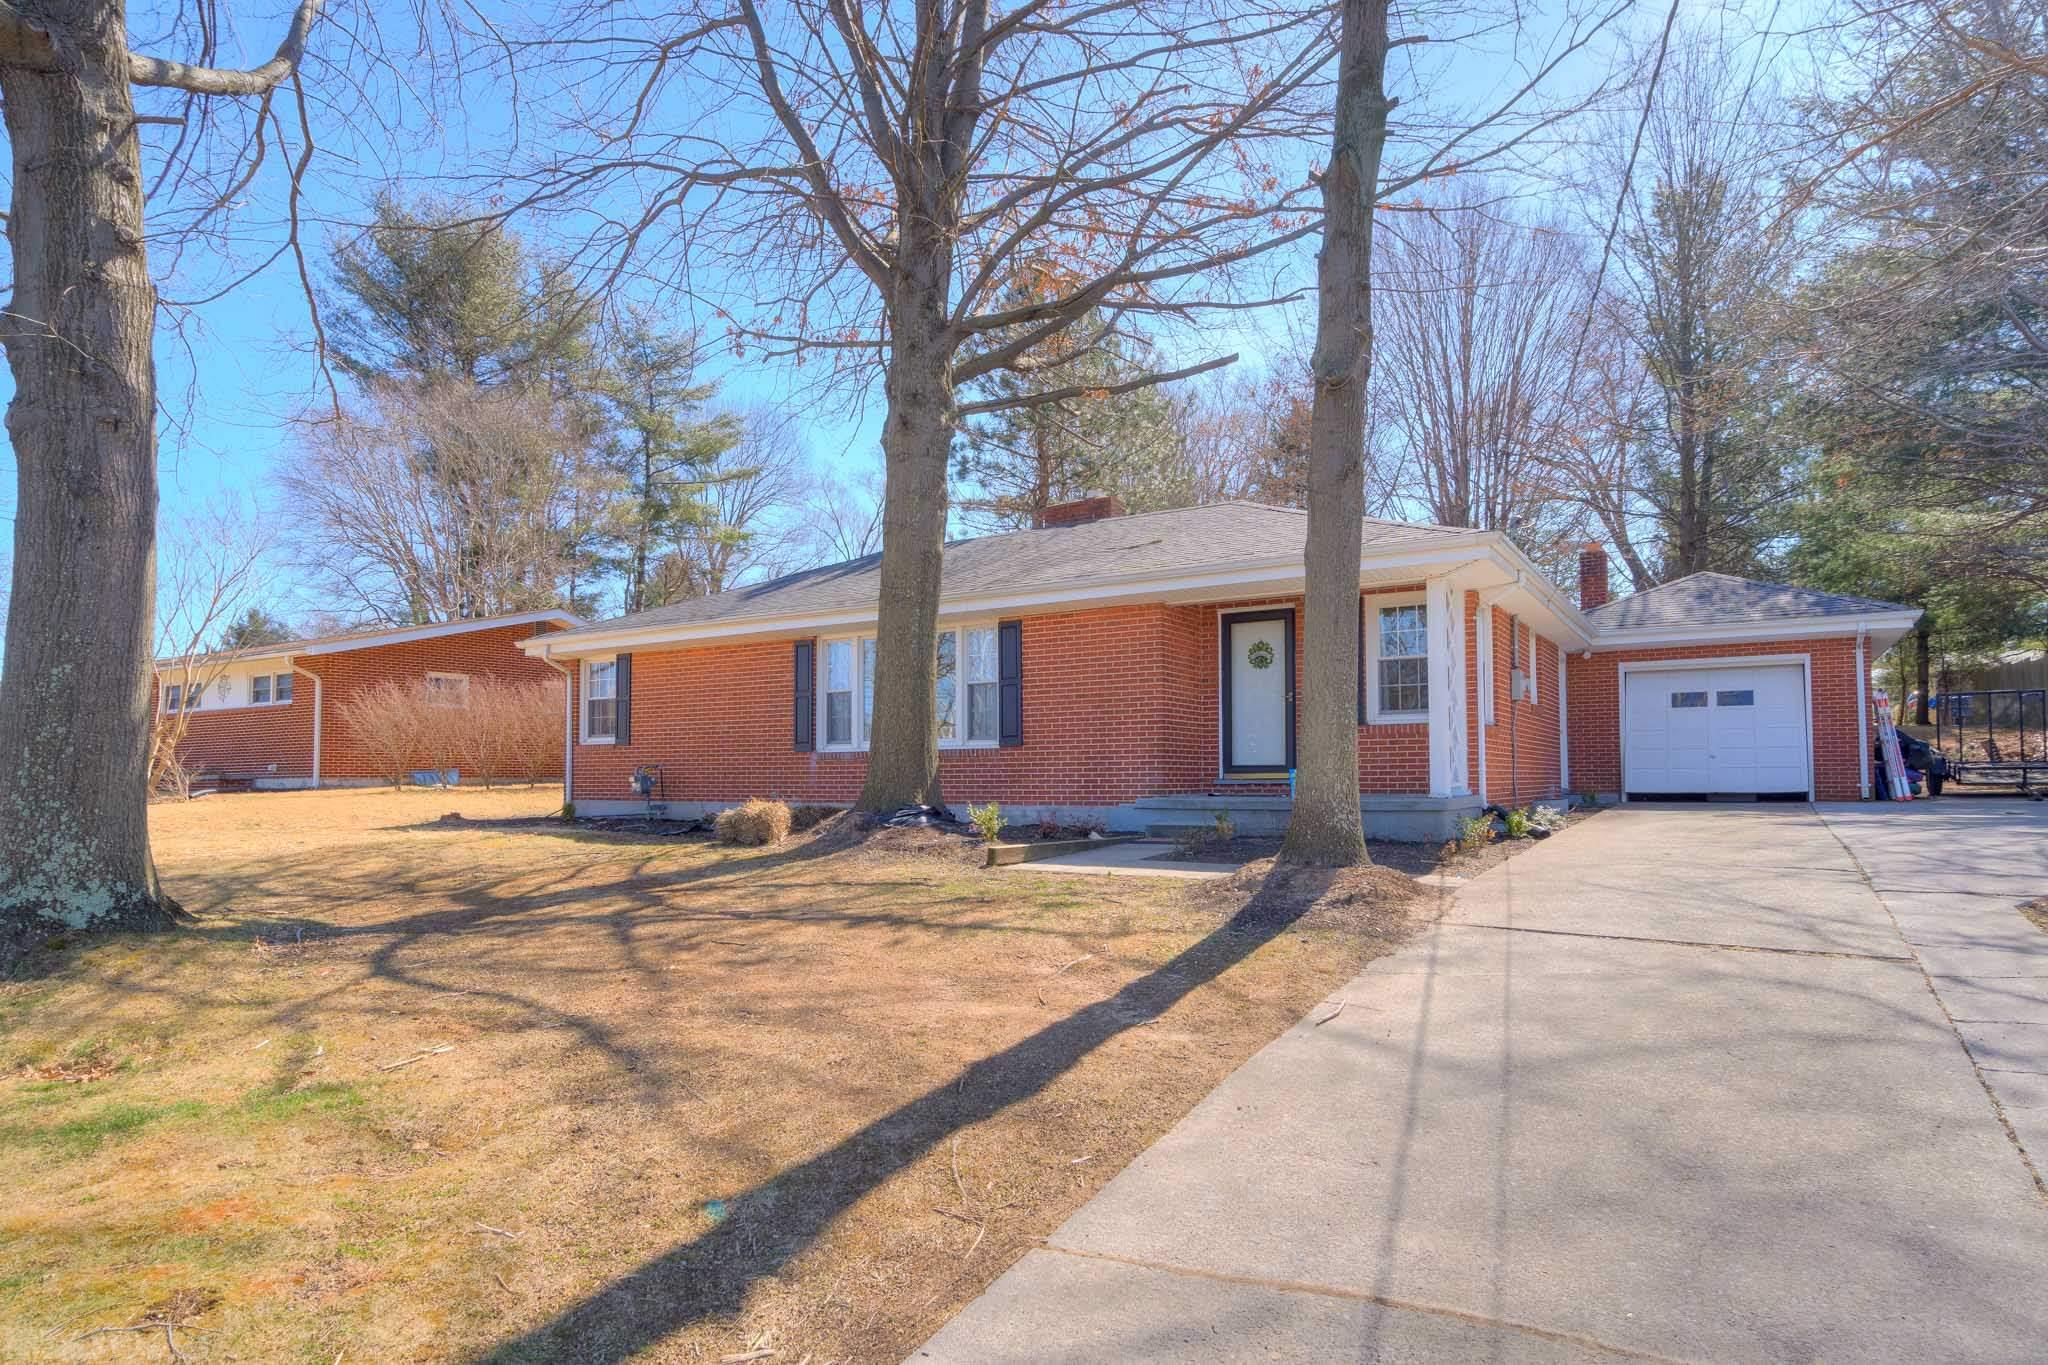 This charming move-in ready brick ranch boasts 3 bedrooms, 1 bath, with an attached garage and an unfinished walk- out basement full of potential. The flat yard offers mature trees great for shade on a warm summers day and a patio made for entertaining. With freshly finished hardwood floors running the main level of the home, this gorgeous house has style and functionality. The kitchen is outfitted with stainless steel appliances and located right of the bright and cheery sunroom. Schedule a showing today! This home will not last long!